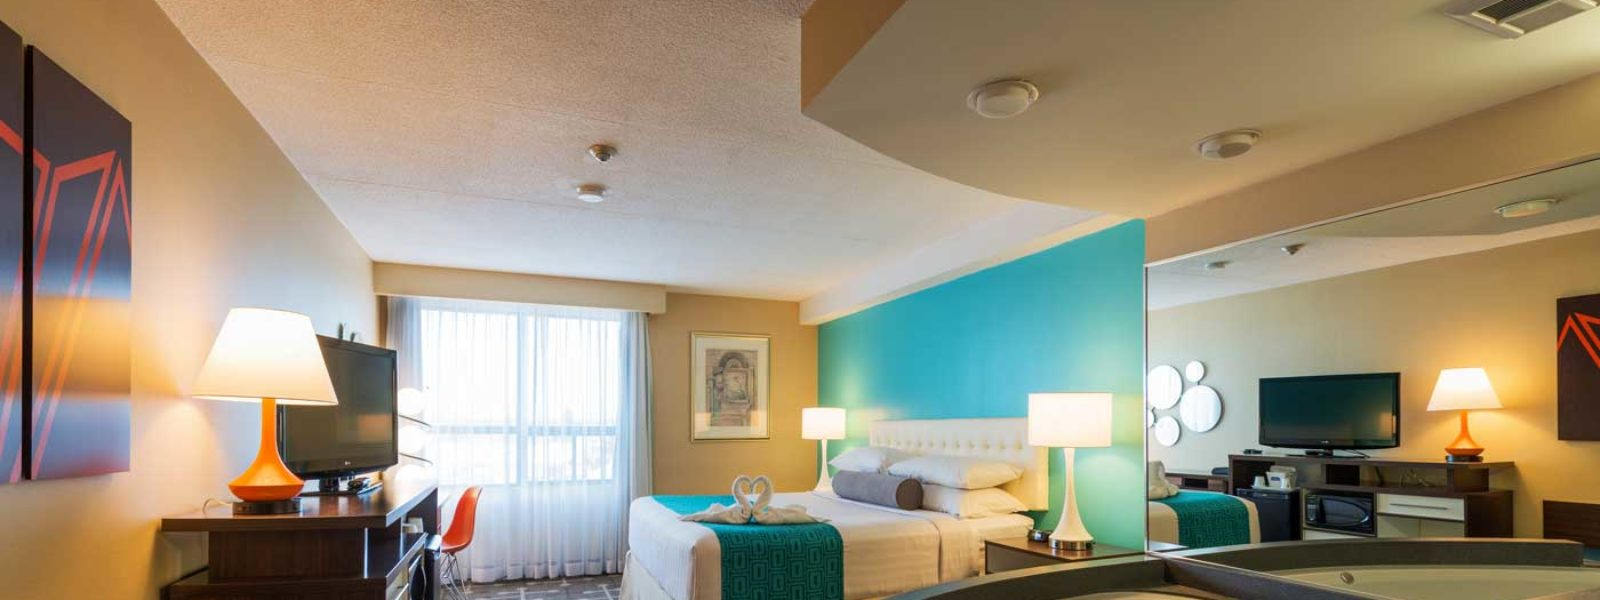 Deluxe King Whirlpool Suite Howard Johnson Plaza By Wyndham By The Falls